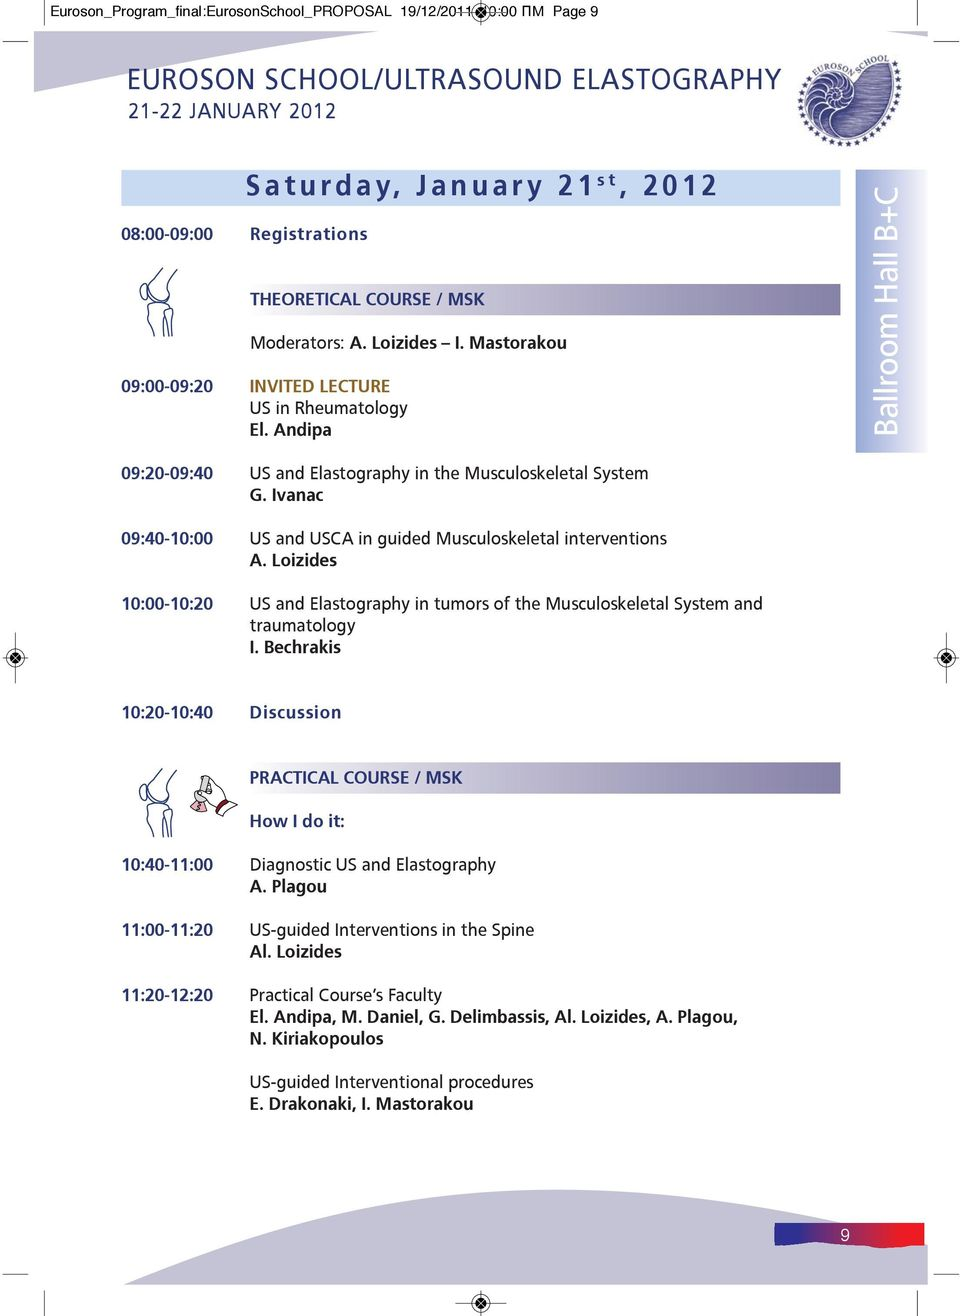 Ivanac 09:40-10:00 US and USCA in guided Musculoskeletal interventions A. Loizides 10:00-10:20 US and Elastography in tumors of the Musculoskeletal System and traumatology Ι.